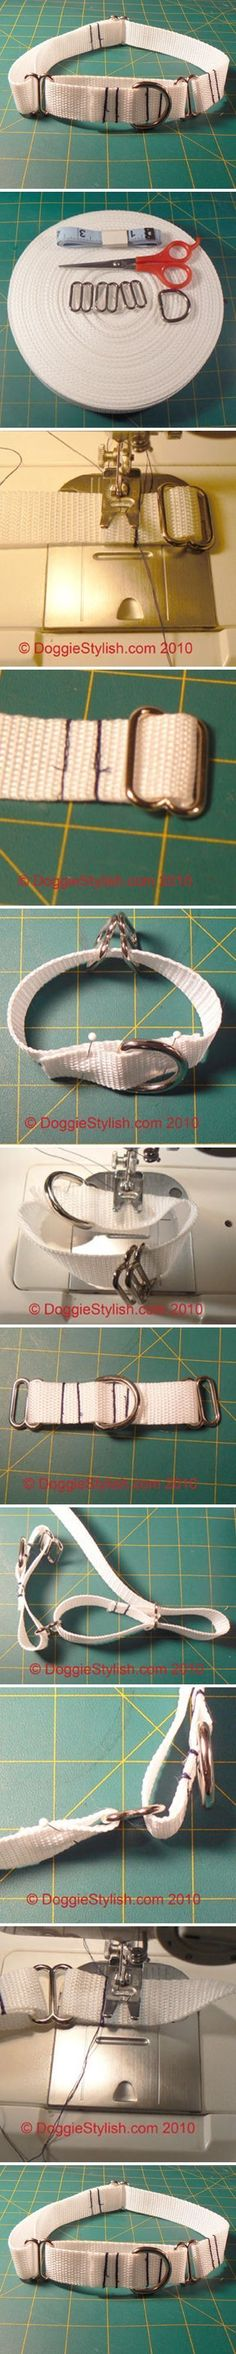 how to make Adjustable Martingable dog collar step by step DIY tutorial instructions / How To Instructions